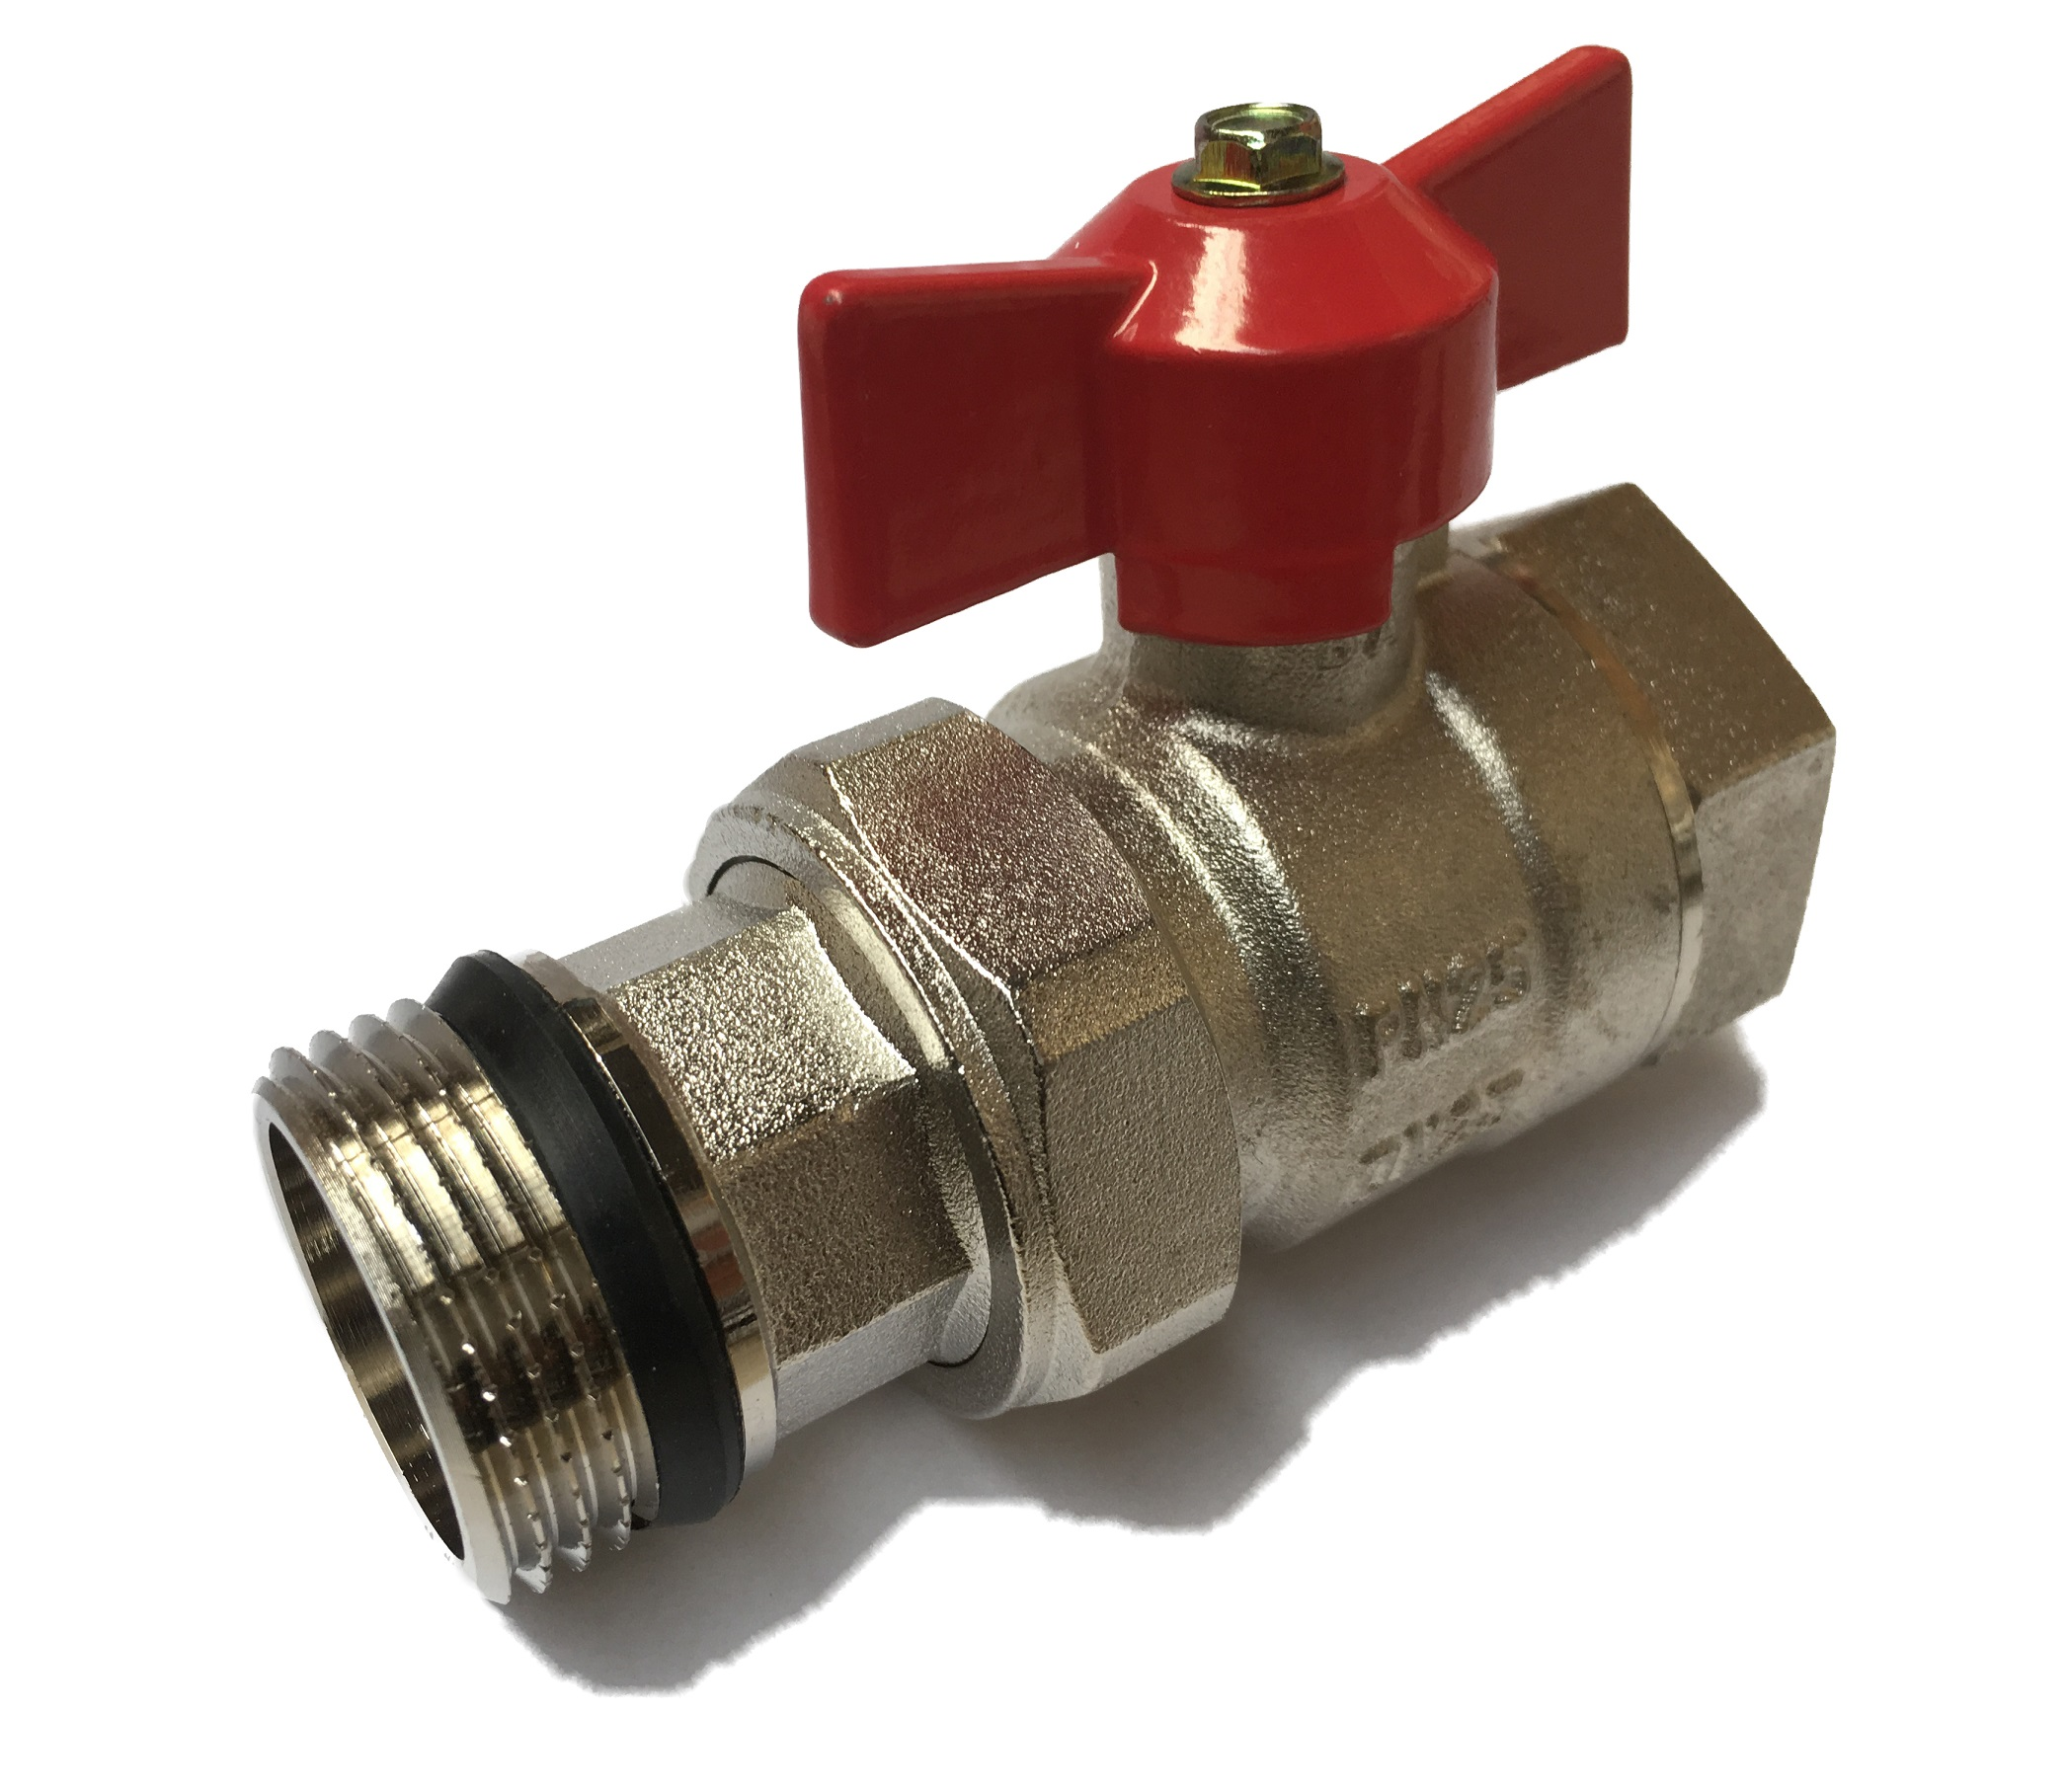 Union Ball Valve w/ Butterfly 4/4 MxF Red - Belco